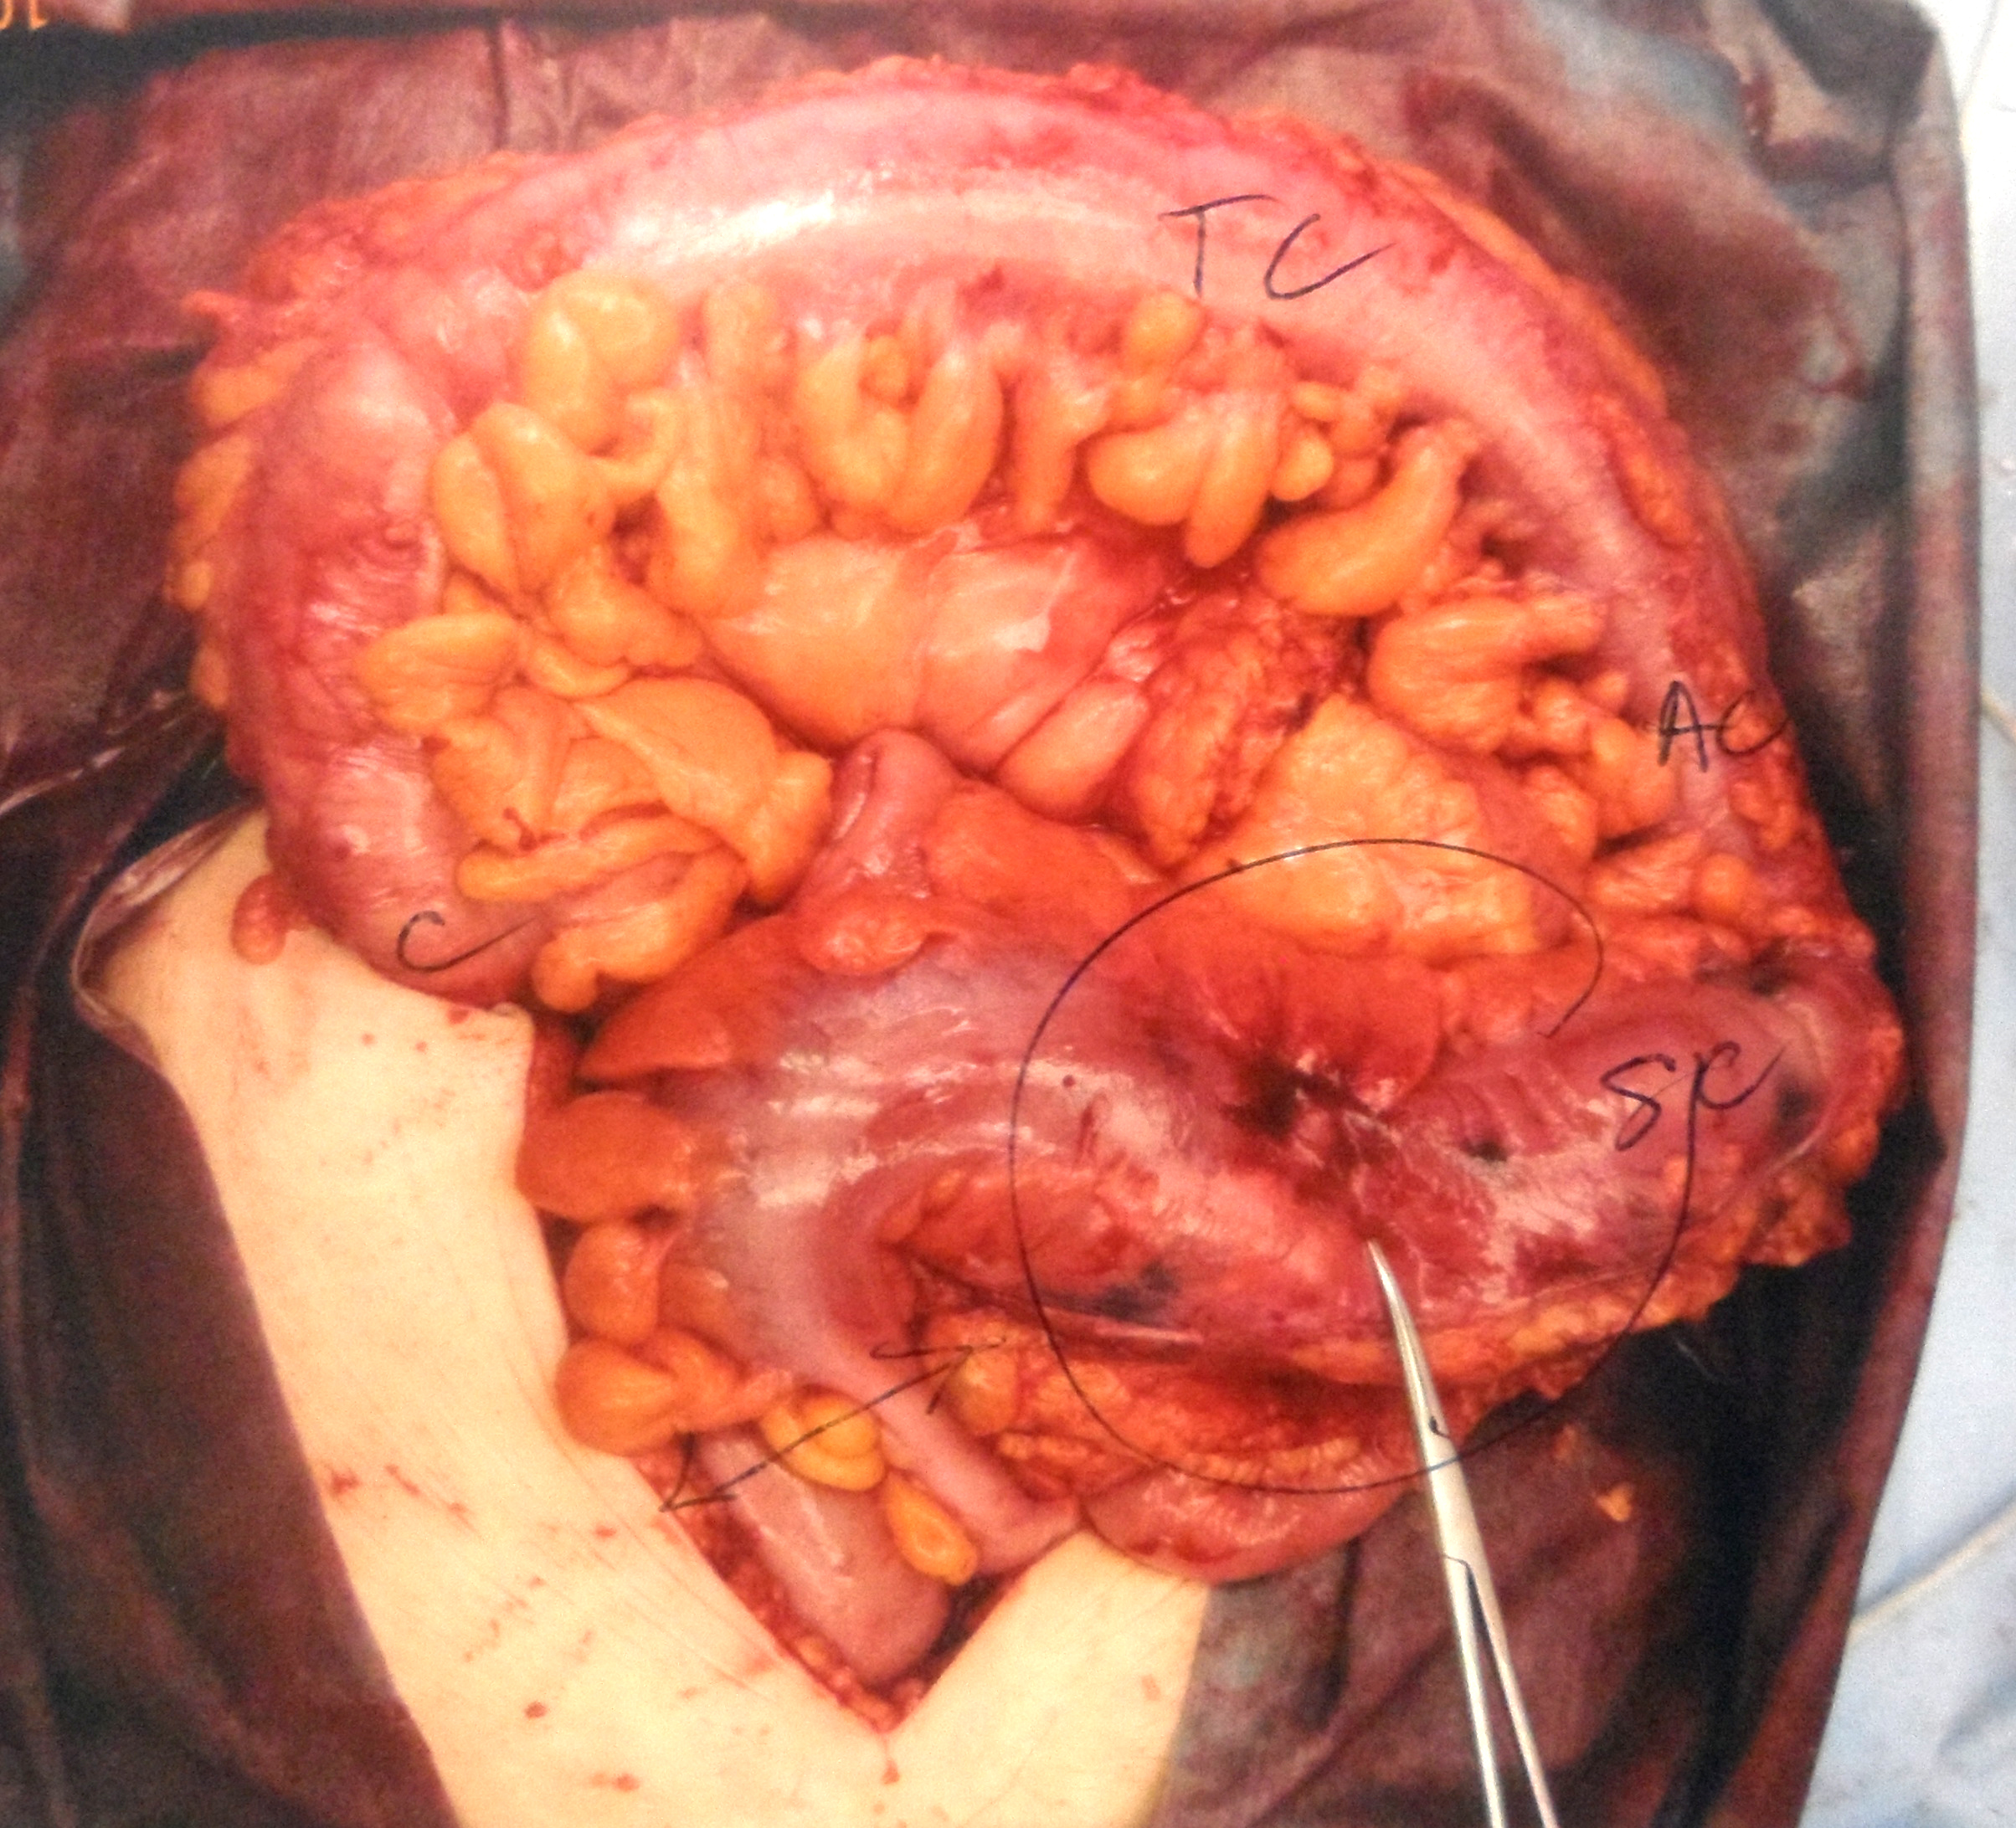 Image Result For For Colon Cancer Surgery